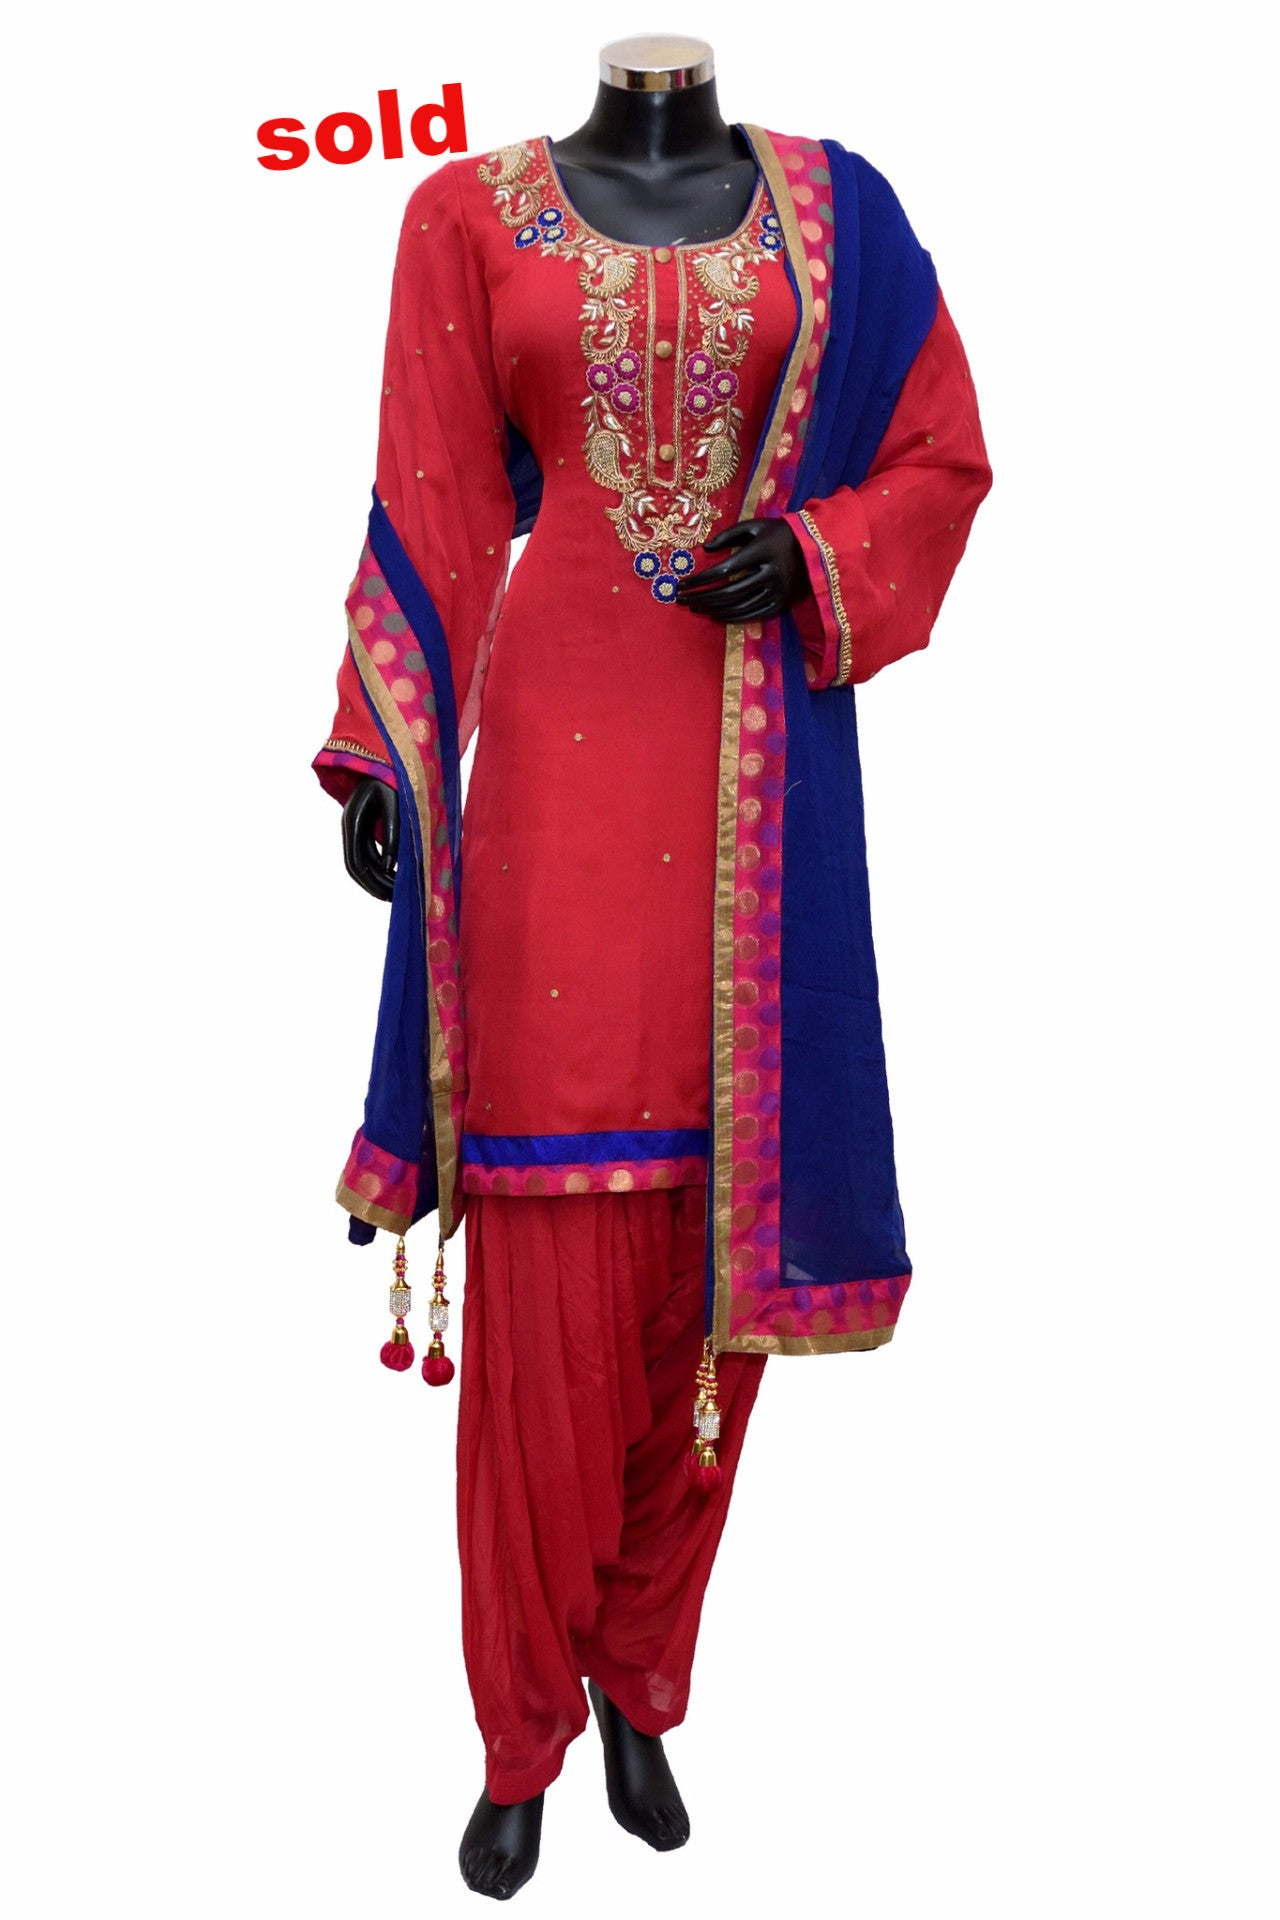 Patiala suit in hot pink and mergenta # fdn0318